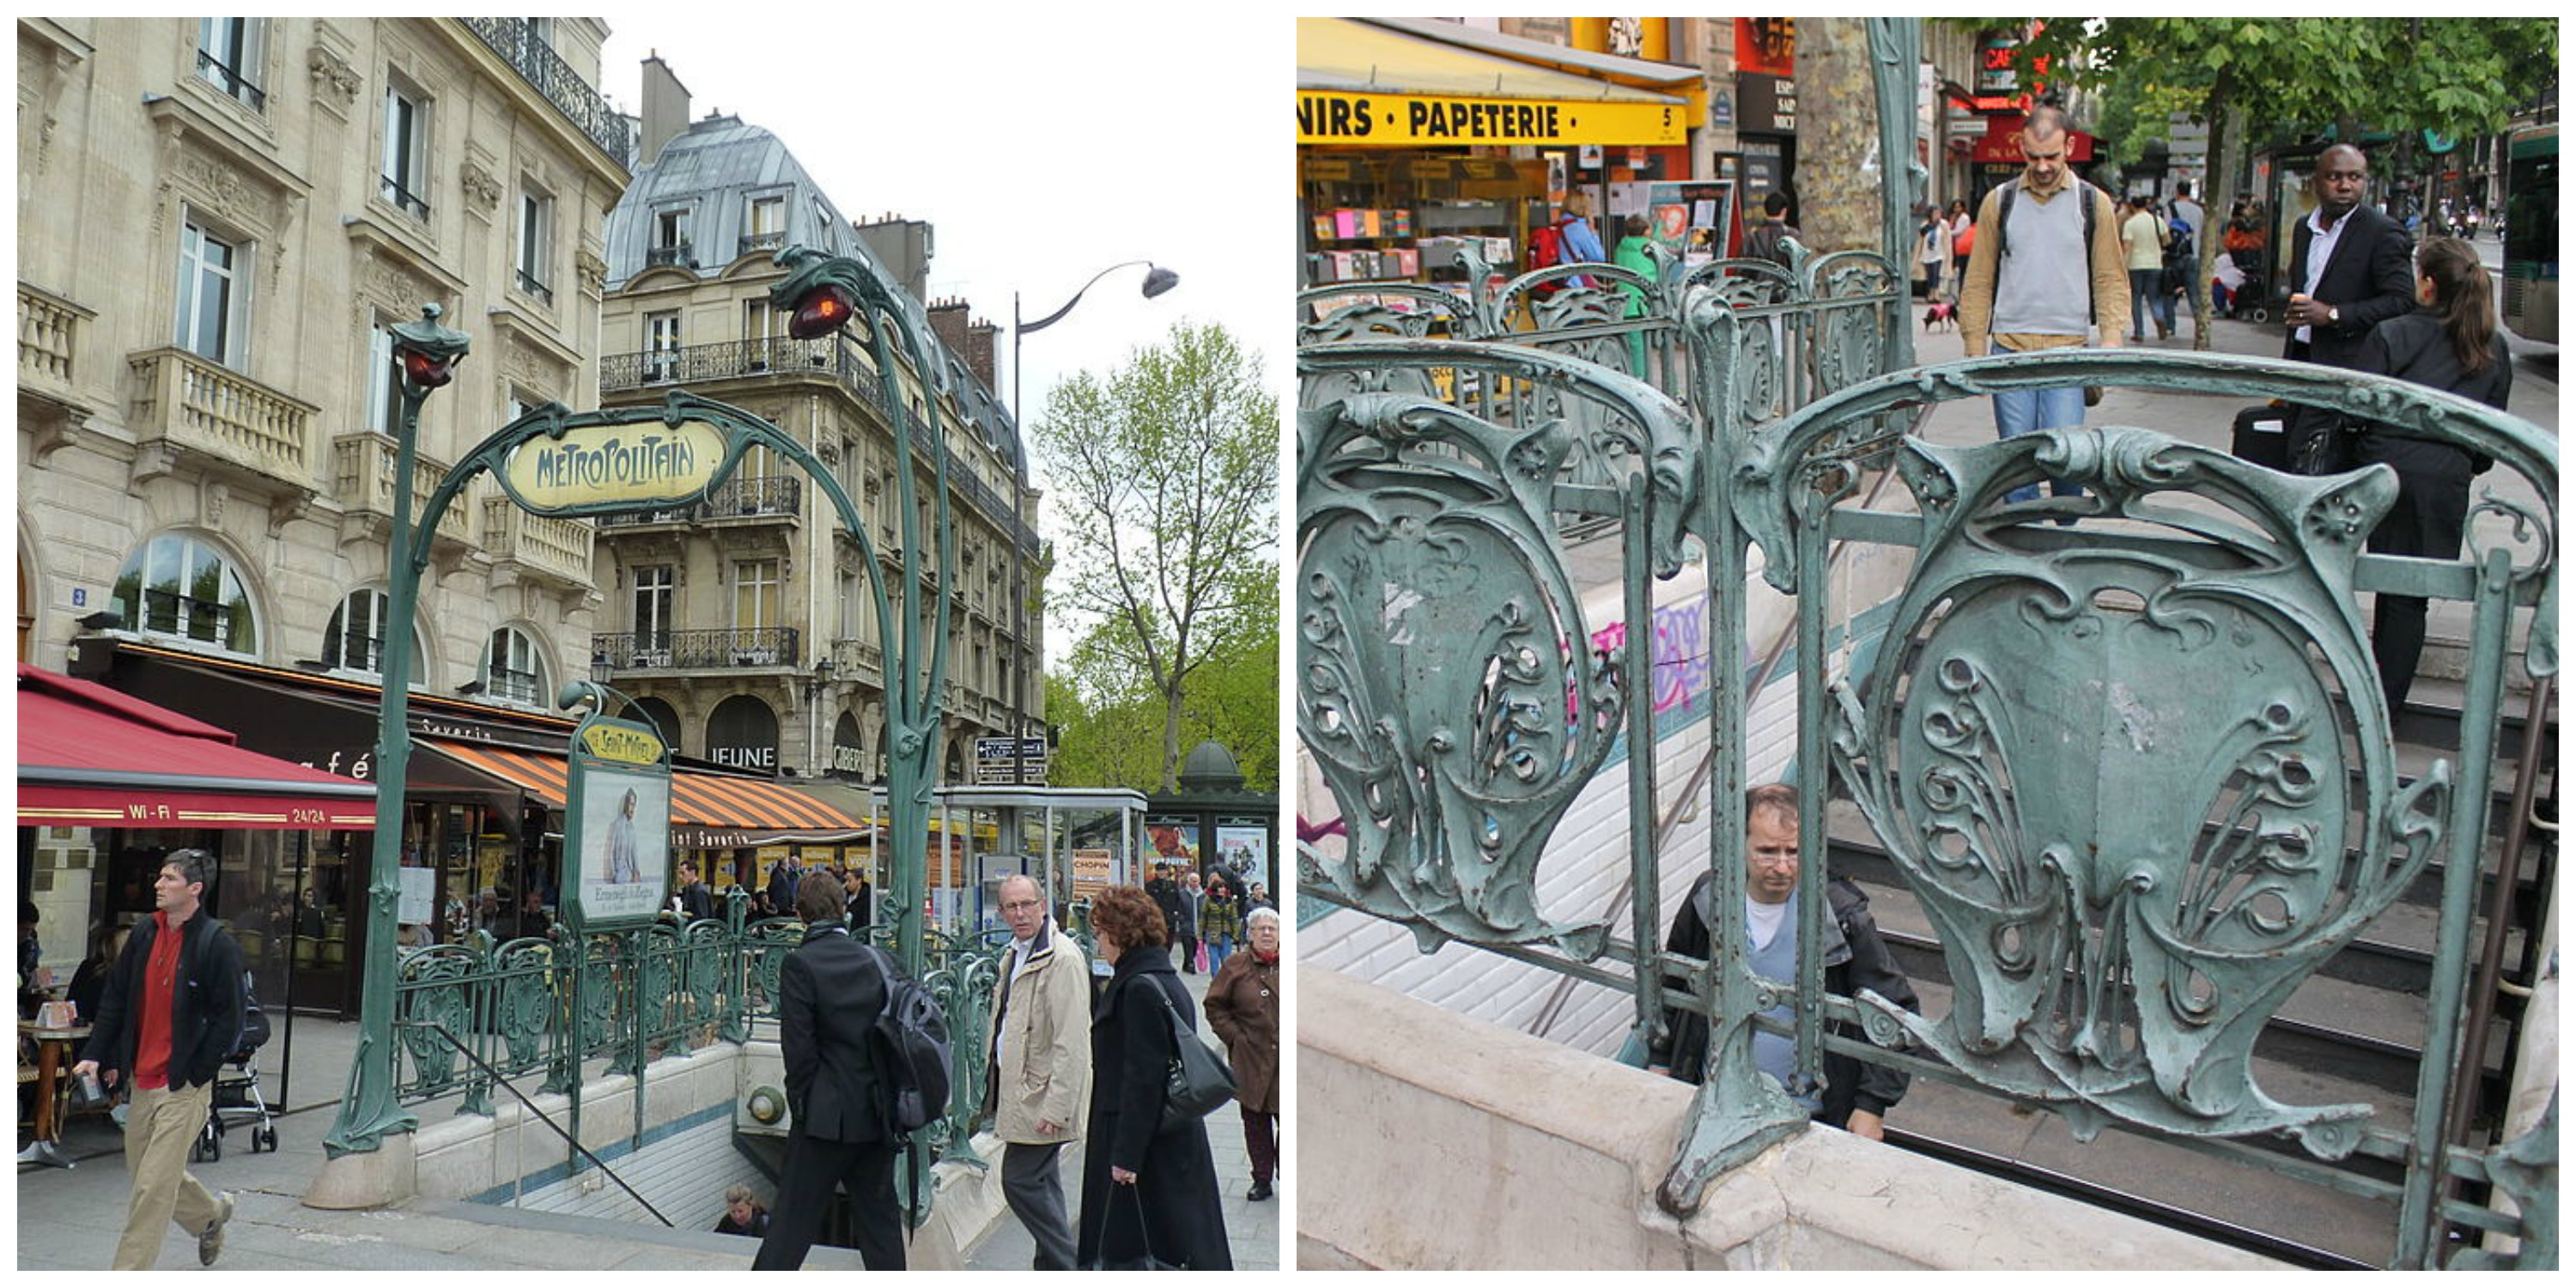 10 Of The Most Beautiful Art Nouveau Metro Stations in Paris